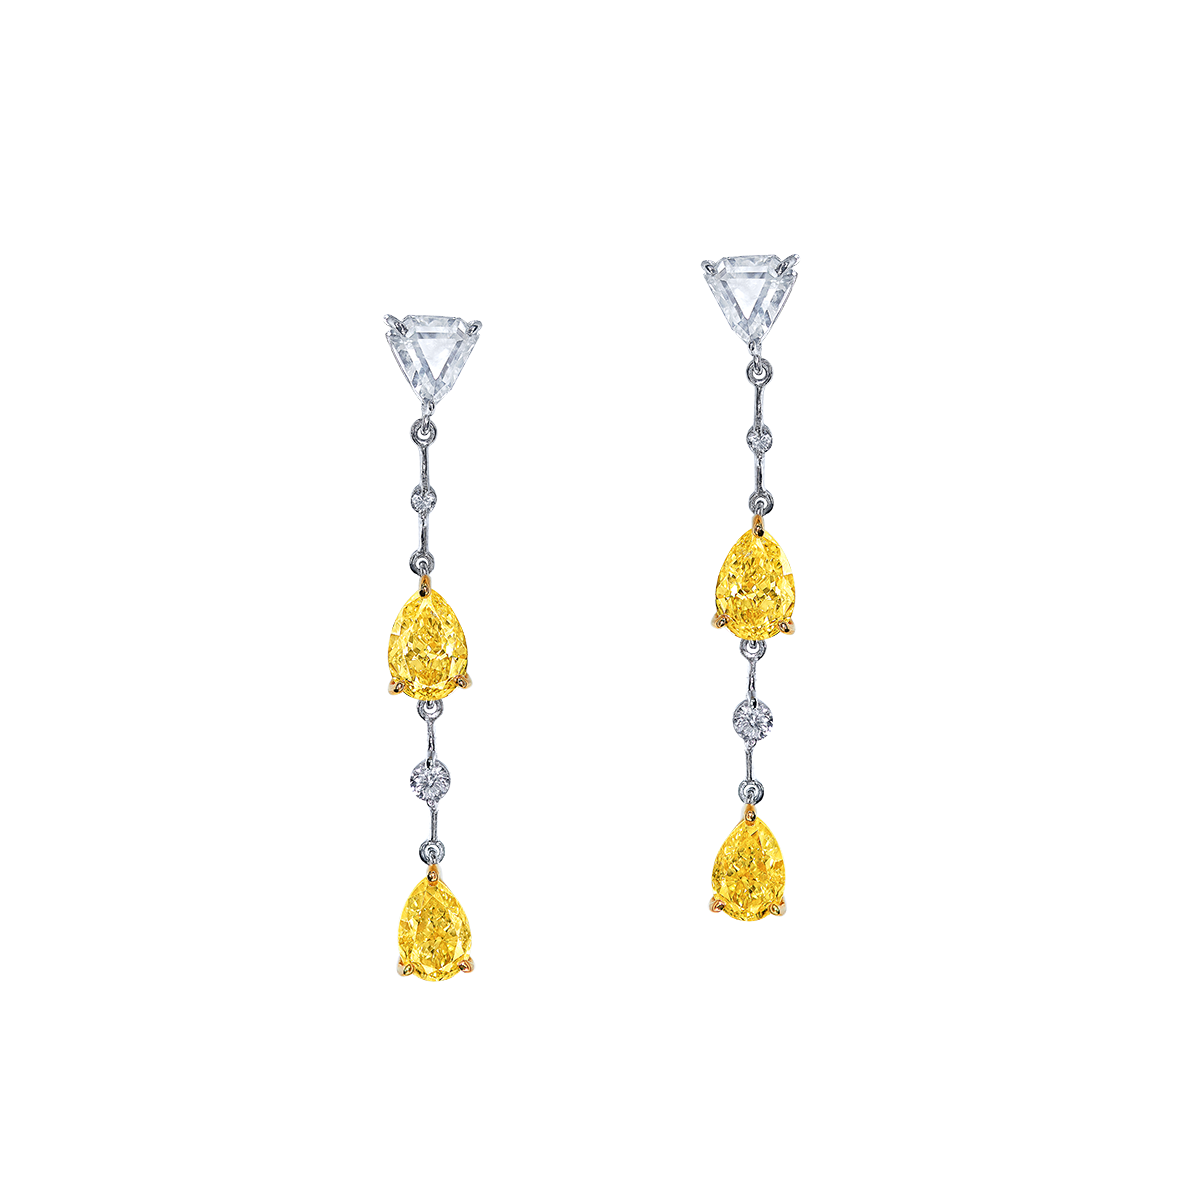 GIA 2.02克拉 黃鑽鑽石耳環